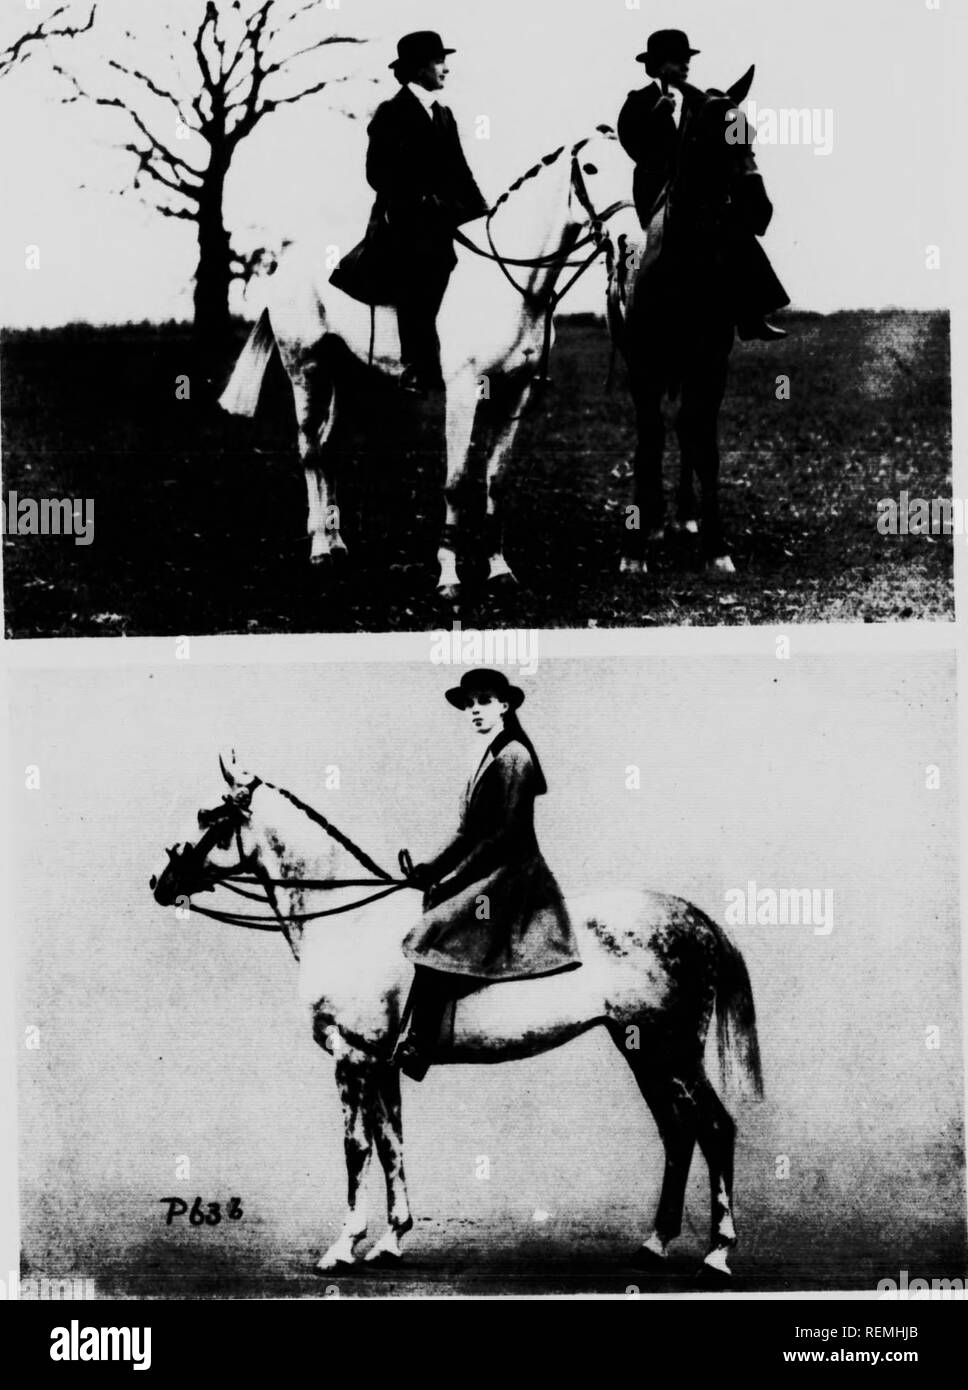 . Modern horse management [microform]. Horses; Horses; Chevaux; Chevaux. PLATE 63 r, s. Q^ Mrrt t>( l.tird Rothschild'! Stigh champion: Mill Hrtece on THE LADY ASTRIDE SADDLE nHi. Copyright Photo: Sport and General. 'Silver Grey.' fc, .An Inlernalional Hone Show Copyright Photo: W. A. Routh. Please note that these images are extracted from scanned page images that may have been digitally enhanced for readability - coloration and appearance of these illustrations may not perfectly resemble the original work.. Timmis, Reginald S. (Reginald Symonds), 1884-1968. London ; Toronto : Cassell - Stock Image